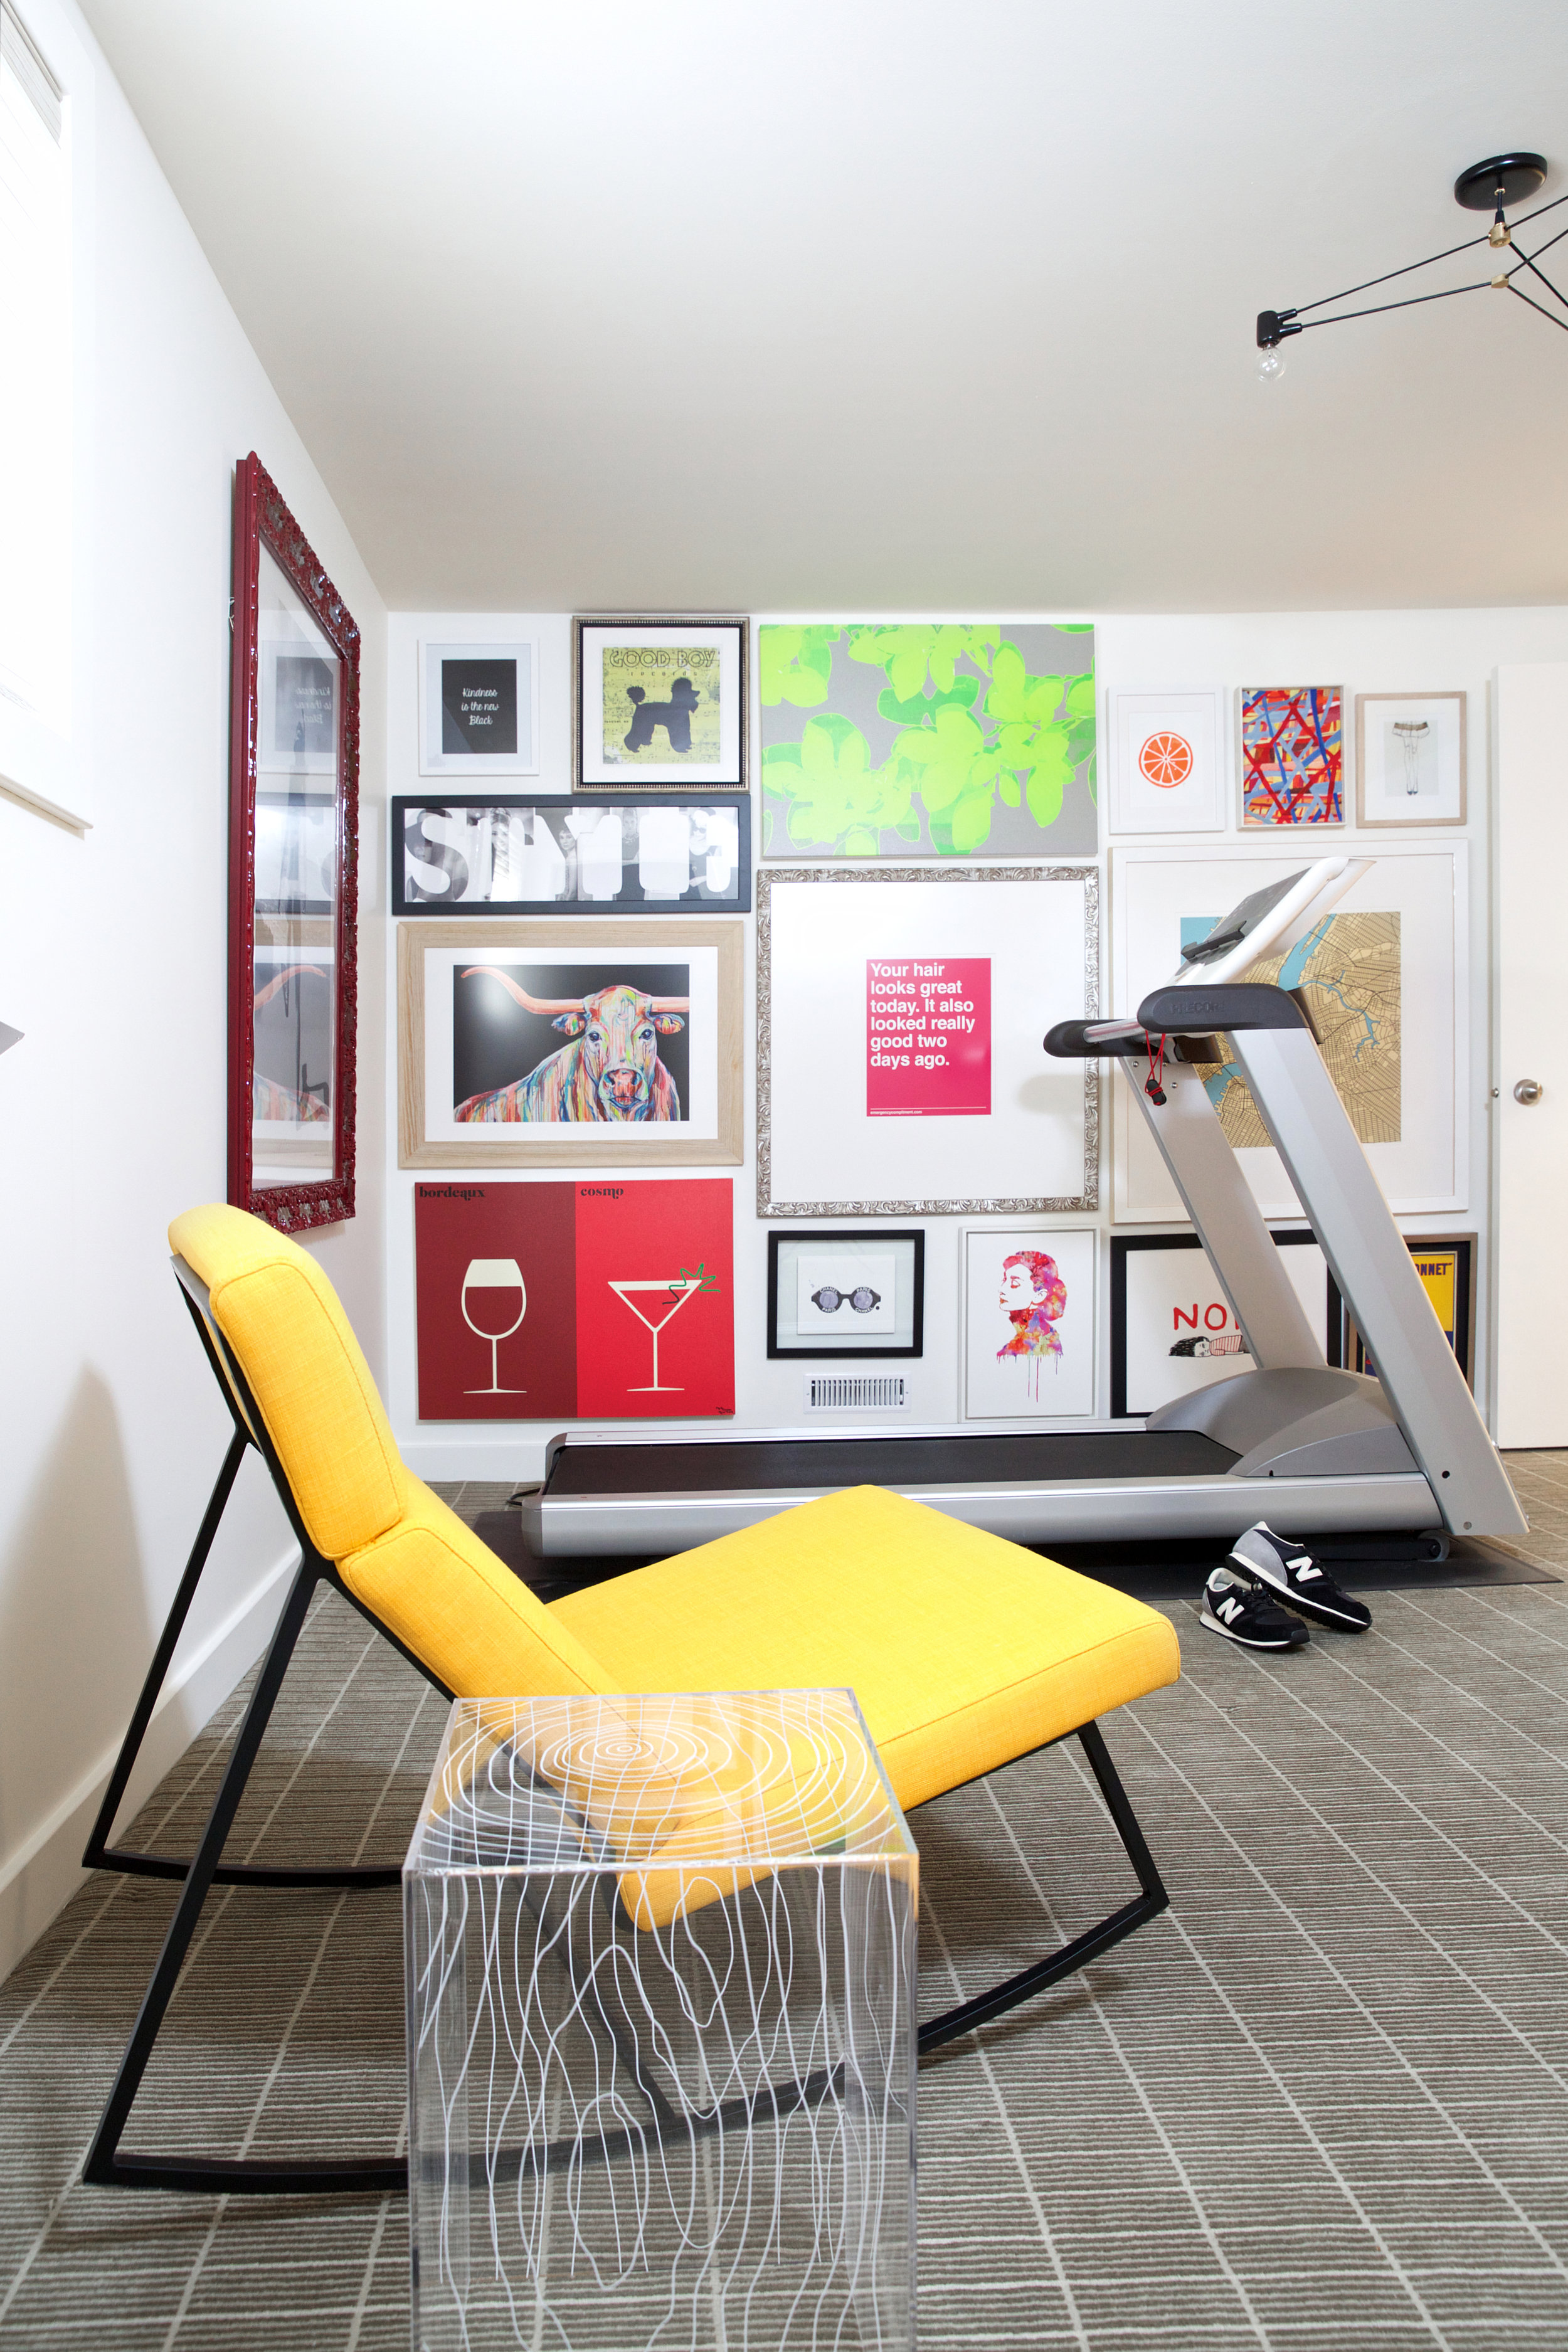 Workout Room Gallery Wall, Nyla Free Designs, Calgary Interior Designer, Photo: Phil Crozier